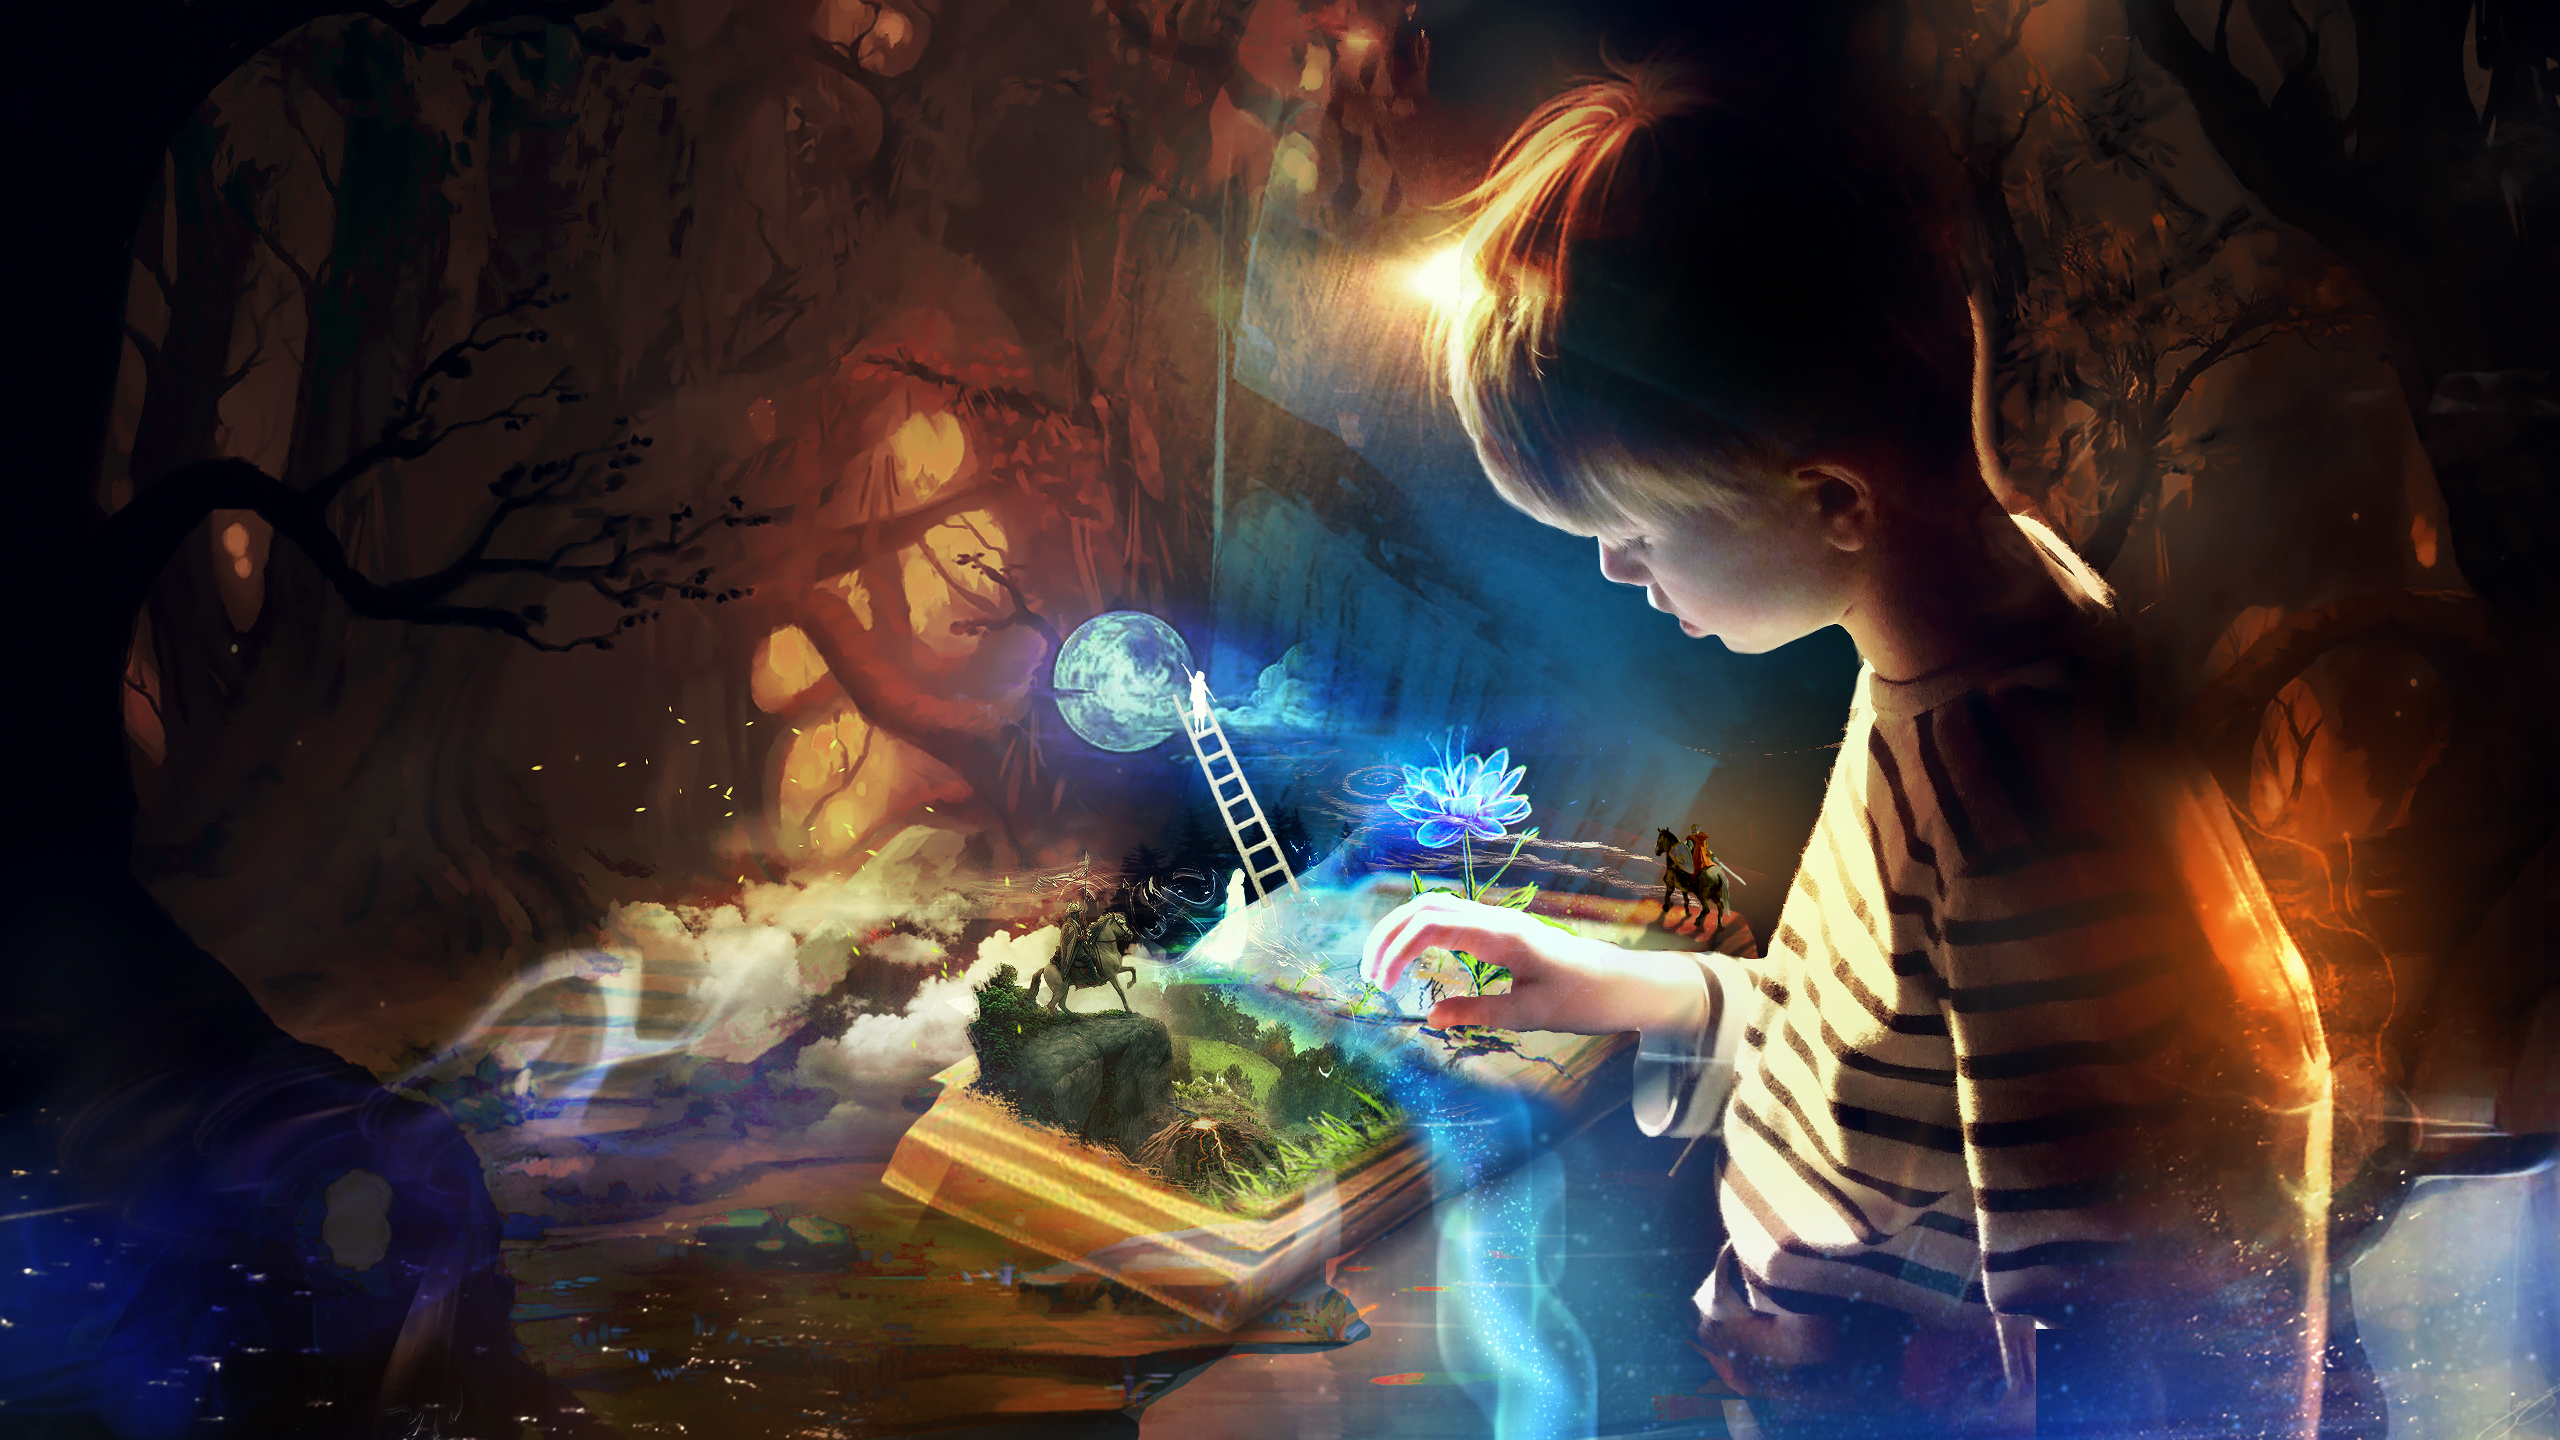 Book Imagination Wallpapers | HD Wallpapers 1961